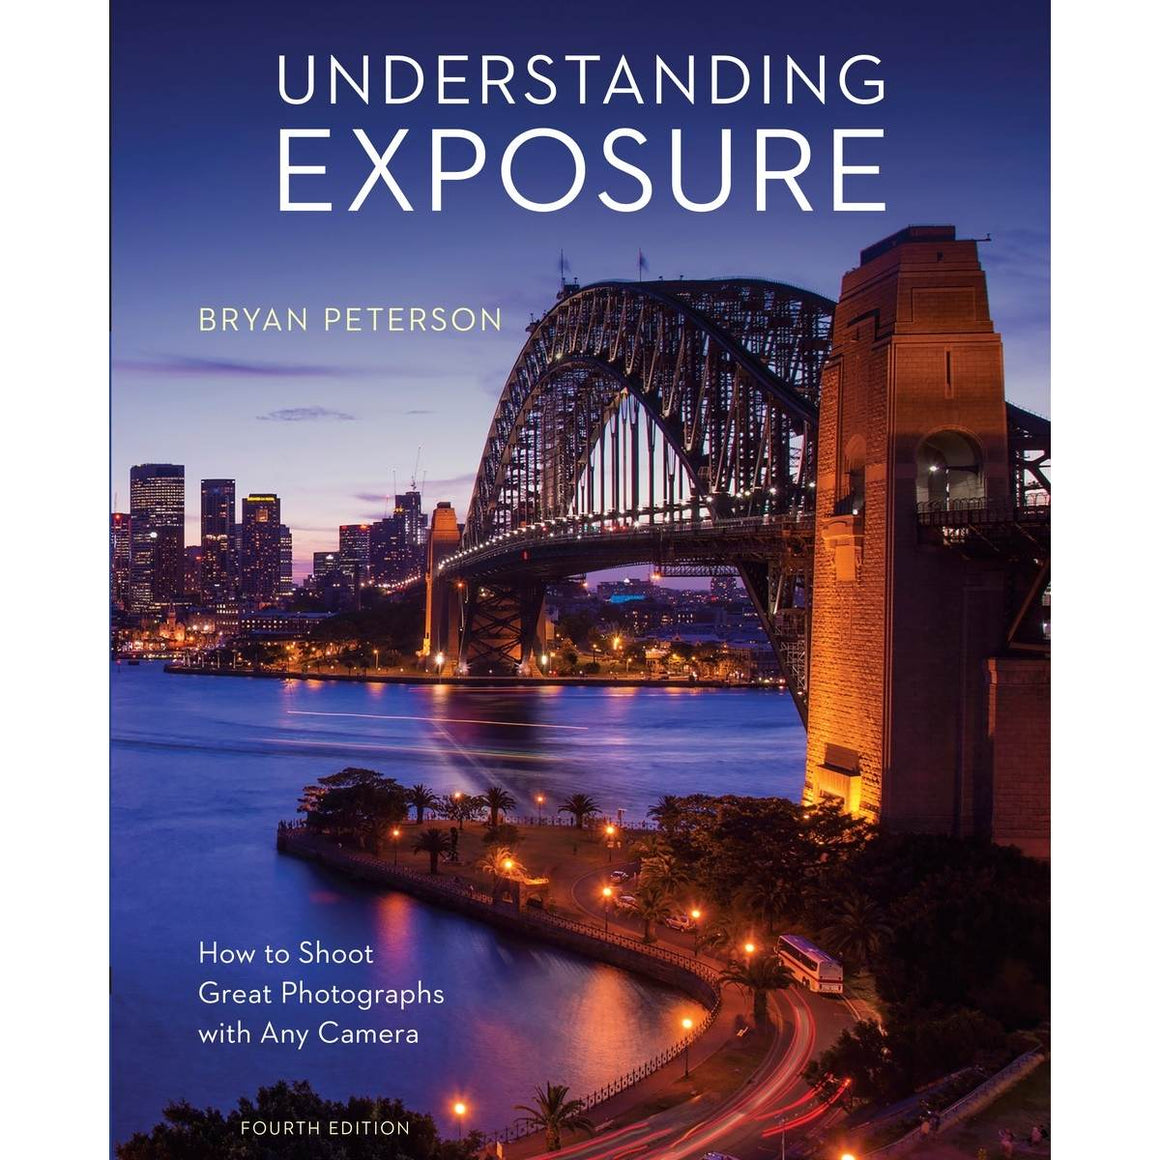 A book cover with a cover photograph of the Sydney harbour bridge lit up in the evening.